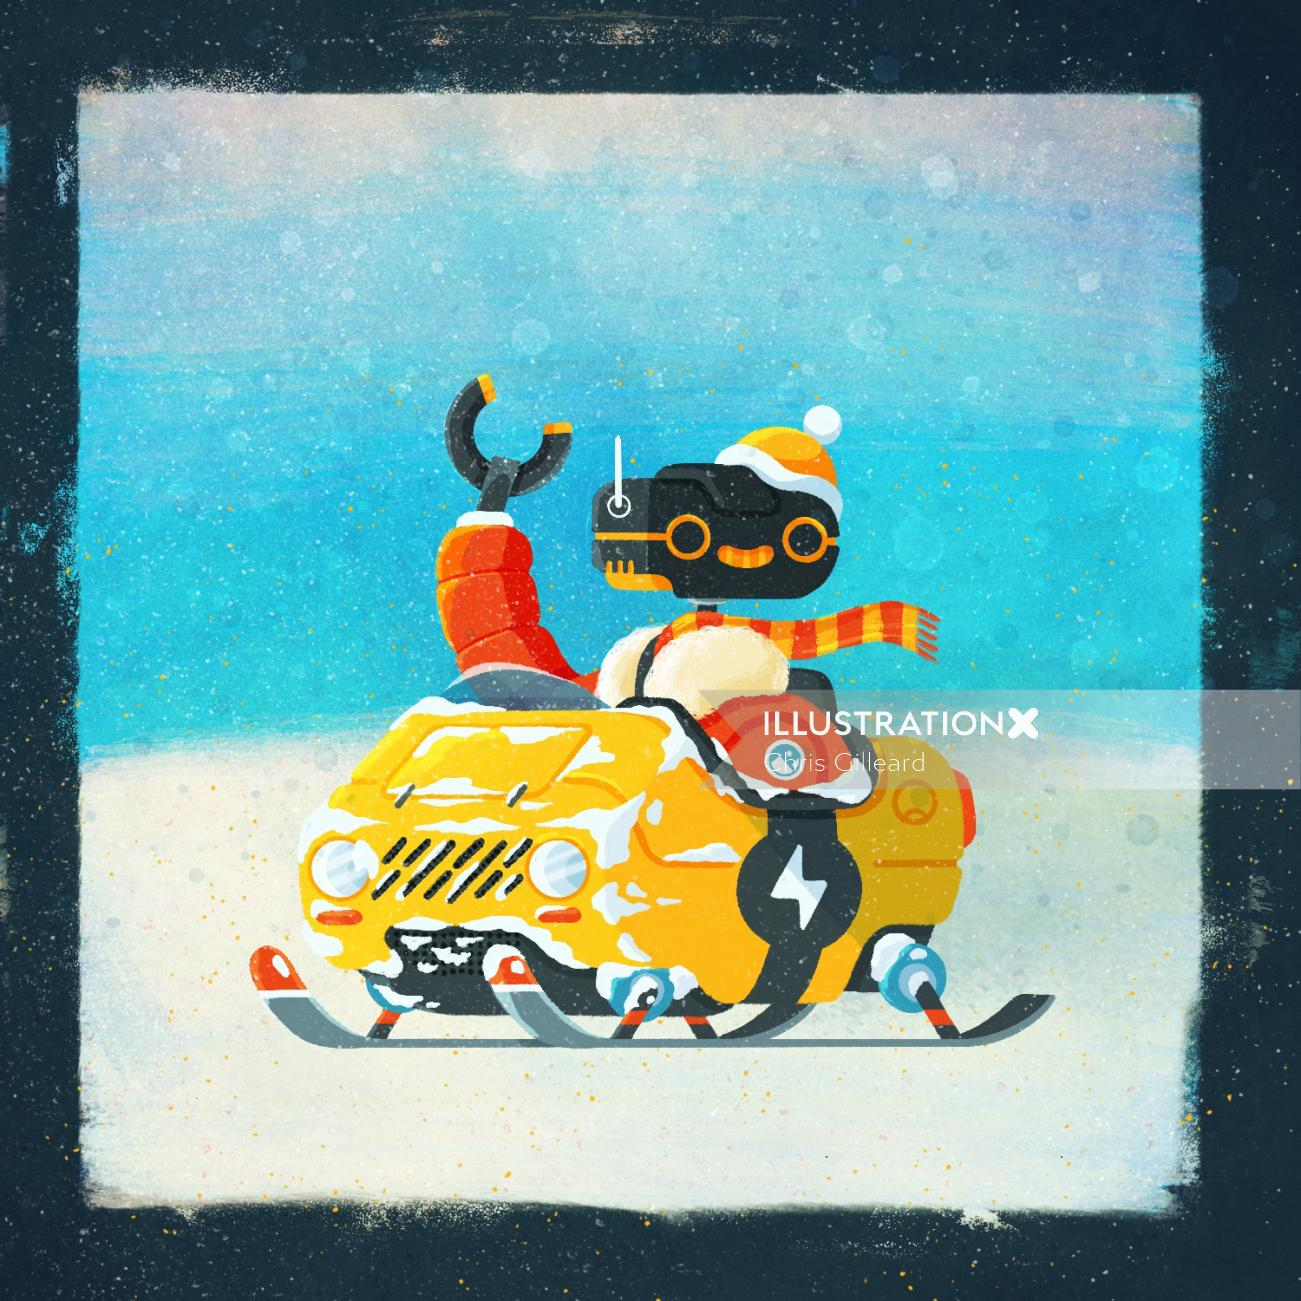 Retro illustration of Snow mobile Robot